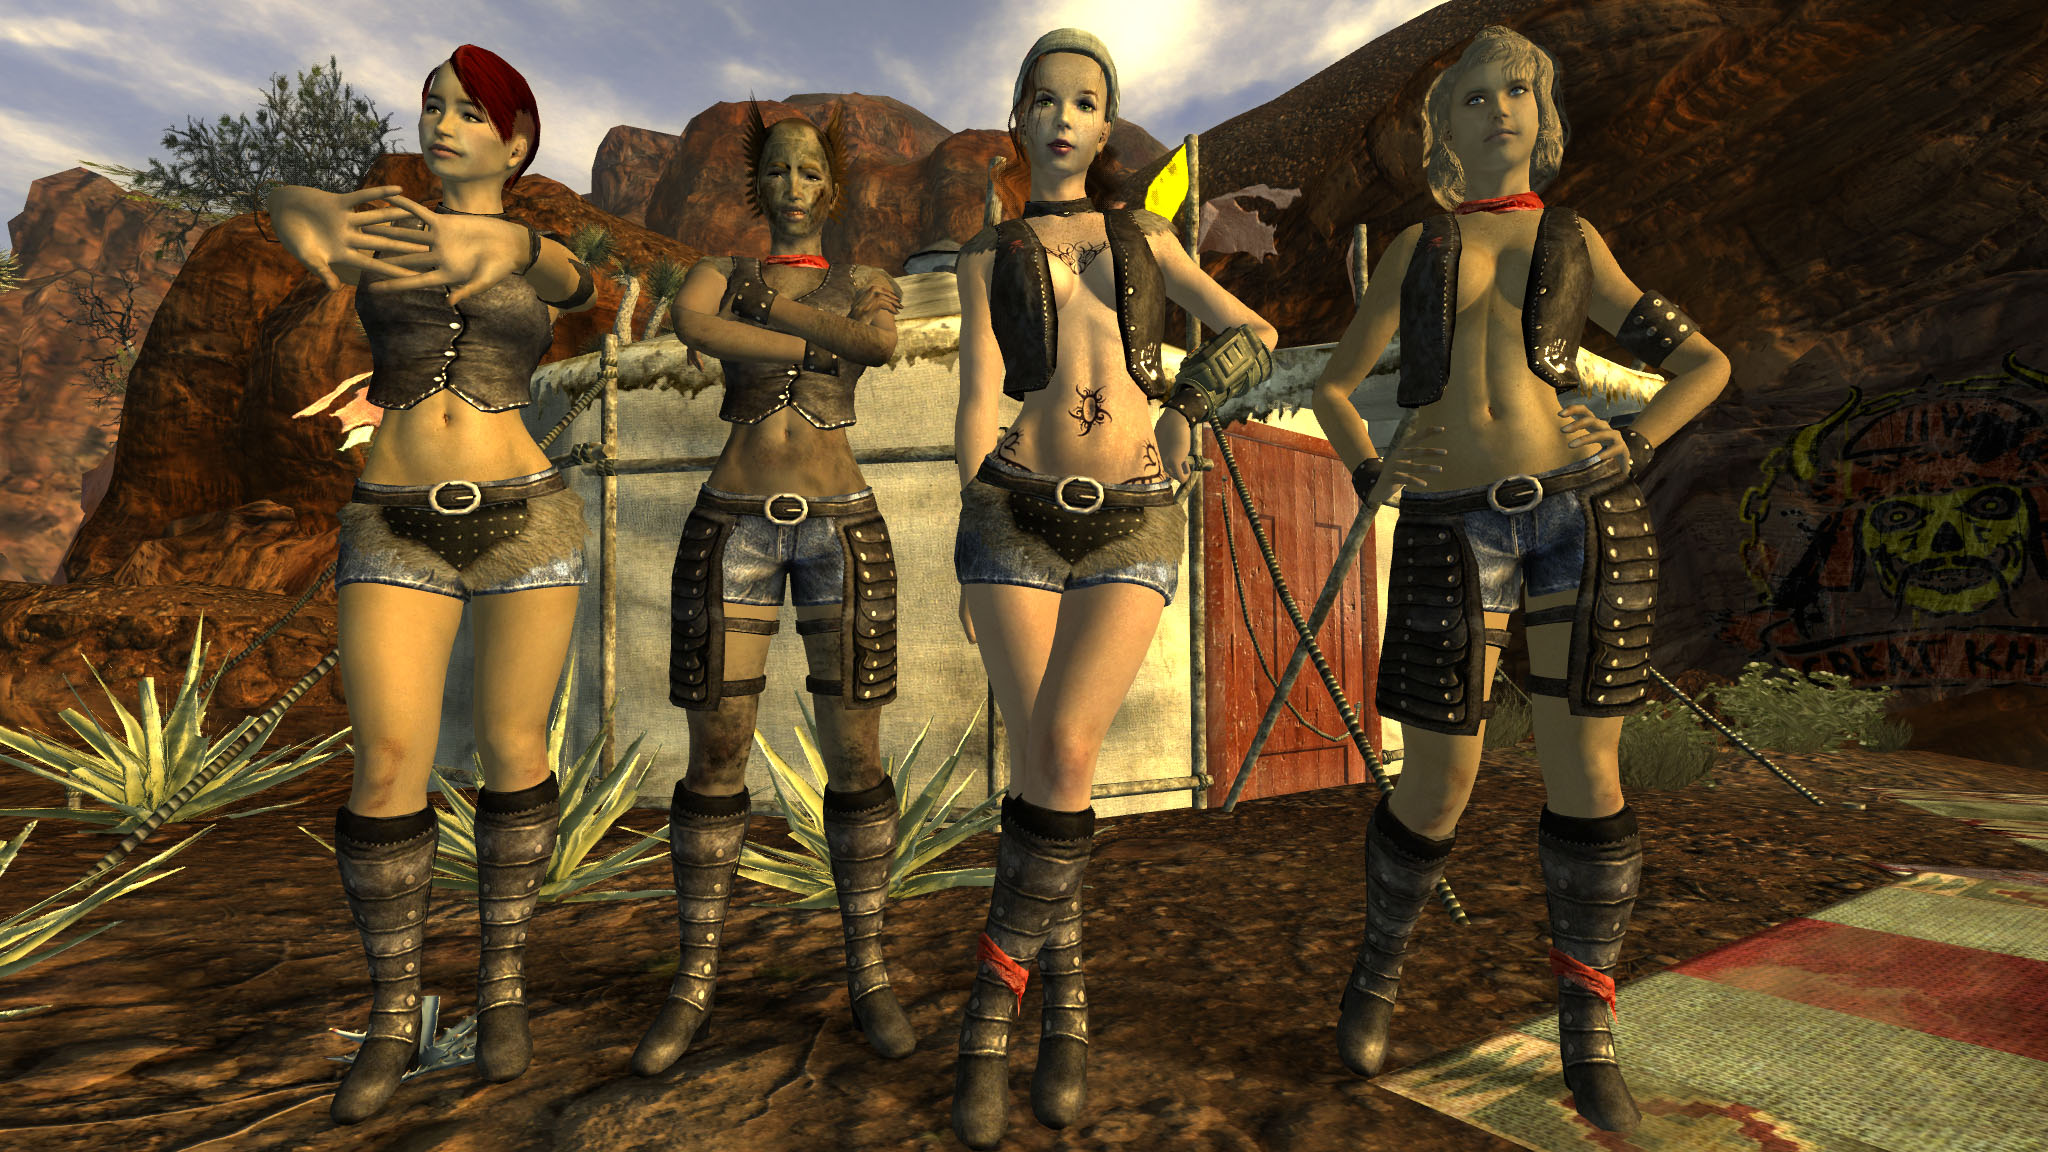 Fallout new vegas sexy females adult pics